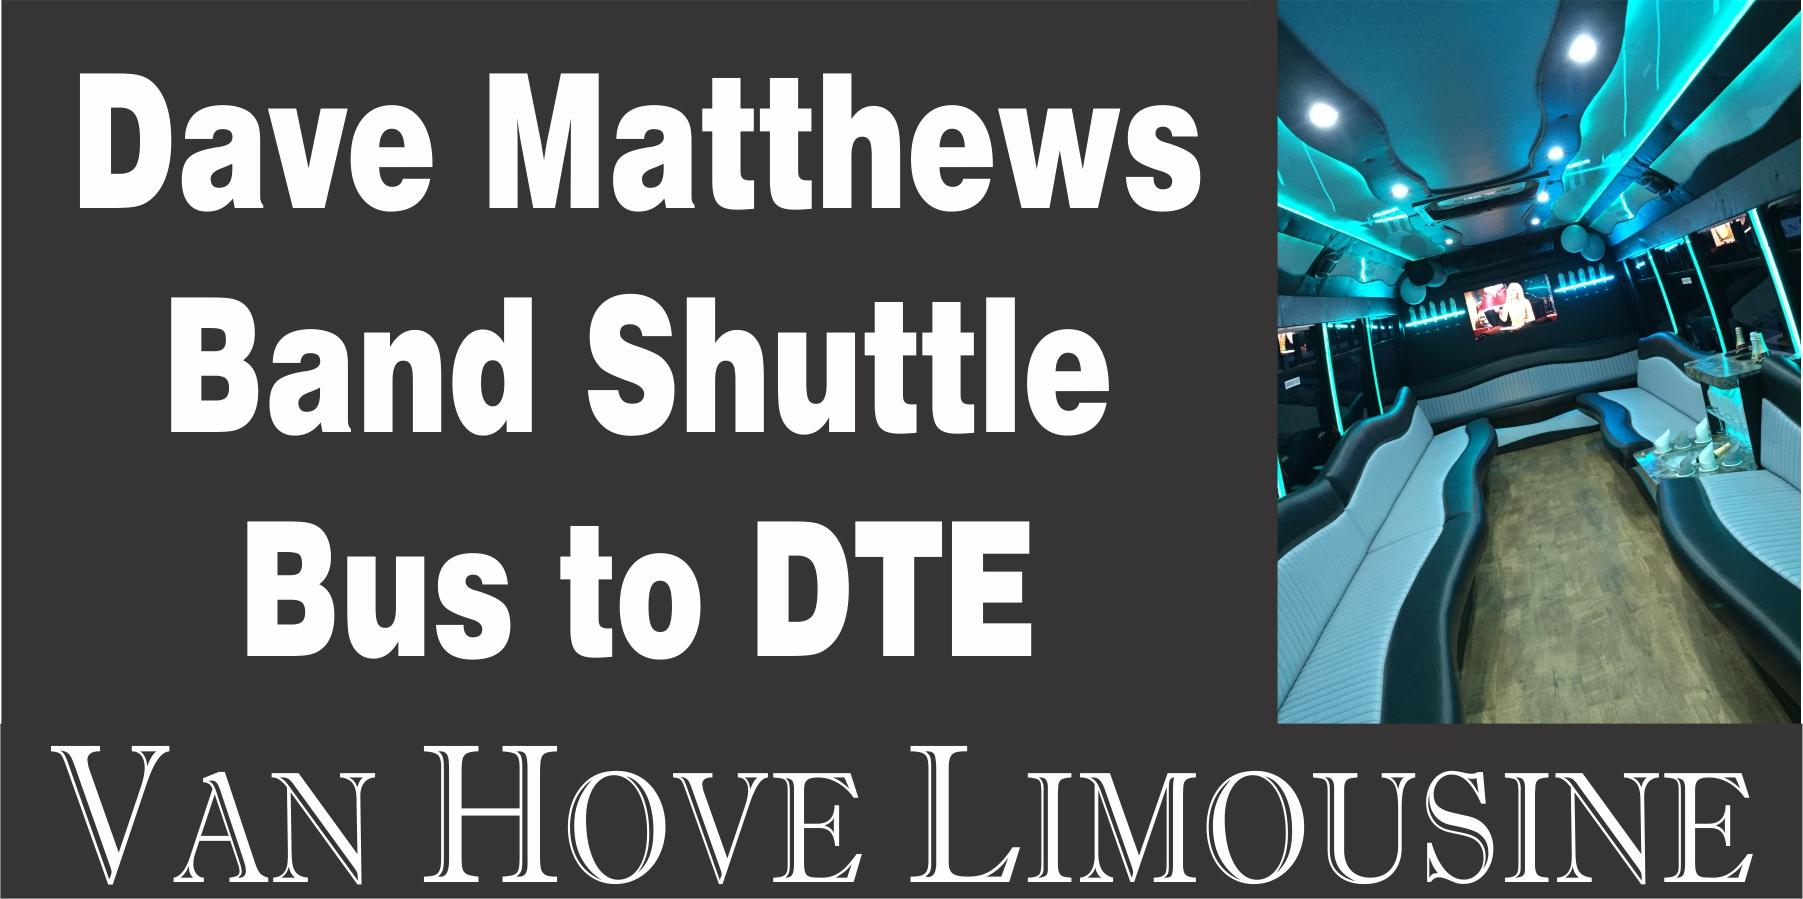 Dave Mathews Band Shuttle Bus to DTE from O'Halloran's / Orleans Mt. Clemens